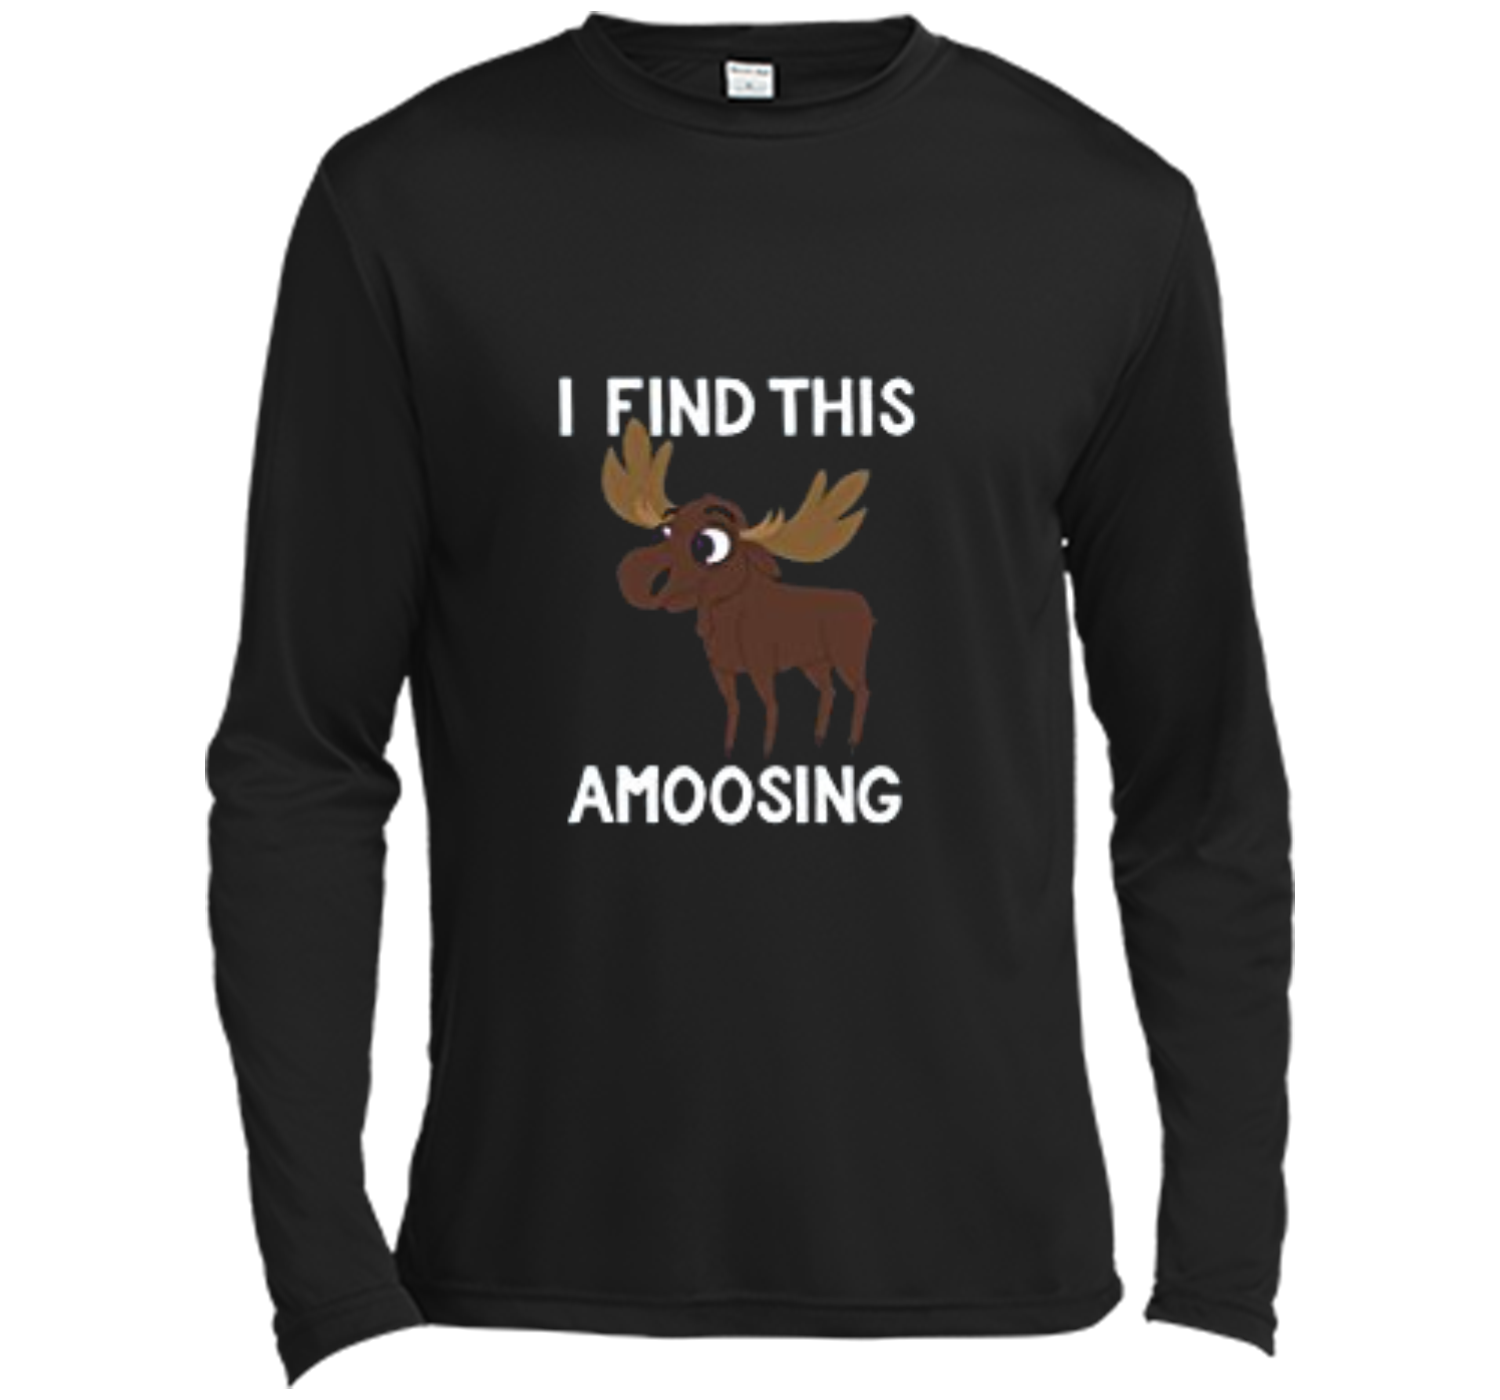 e9968822a0 I Find This Amoosing T-Shirt - Funny Moose Amusing Pun Tee Long Sleeve  Moisture